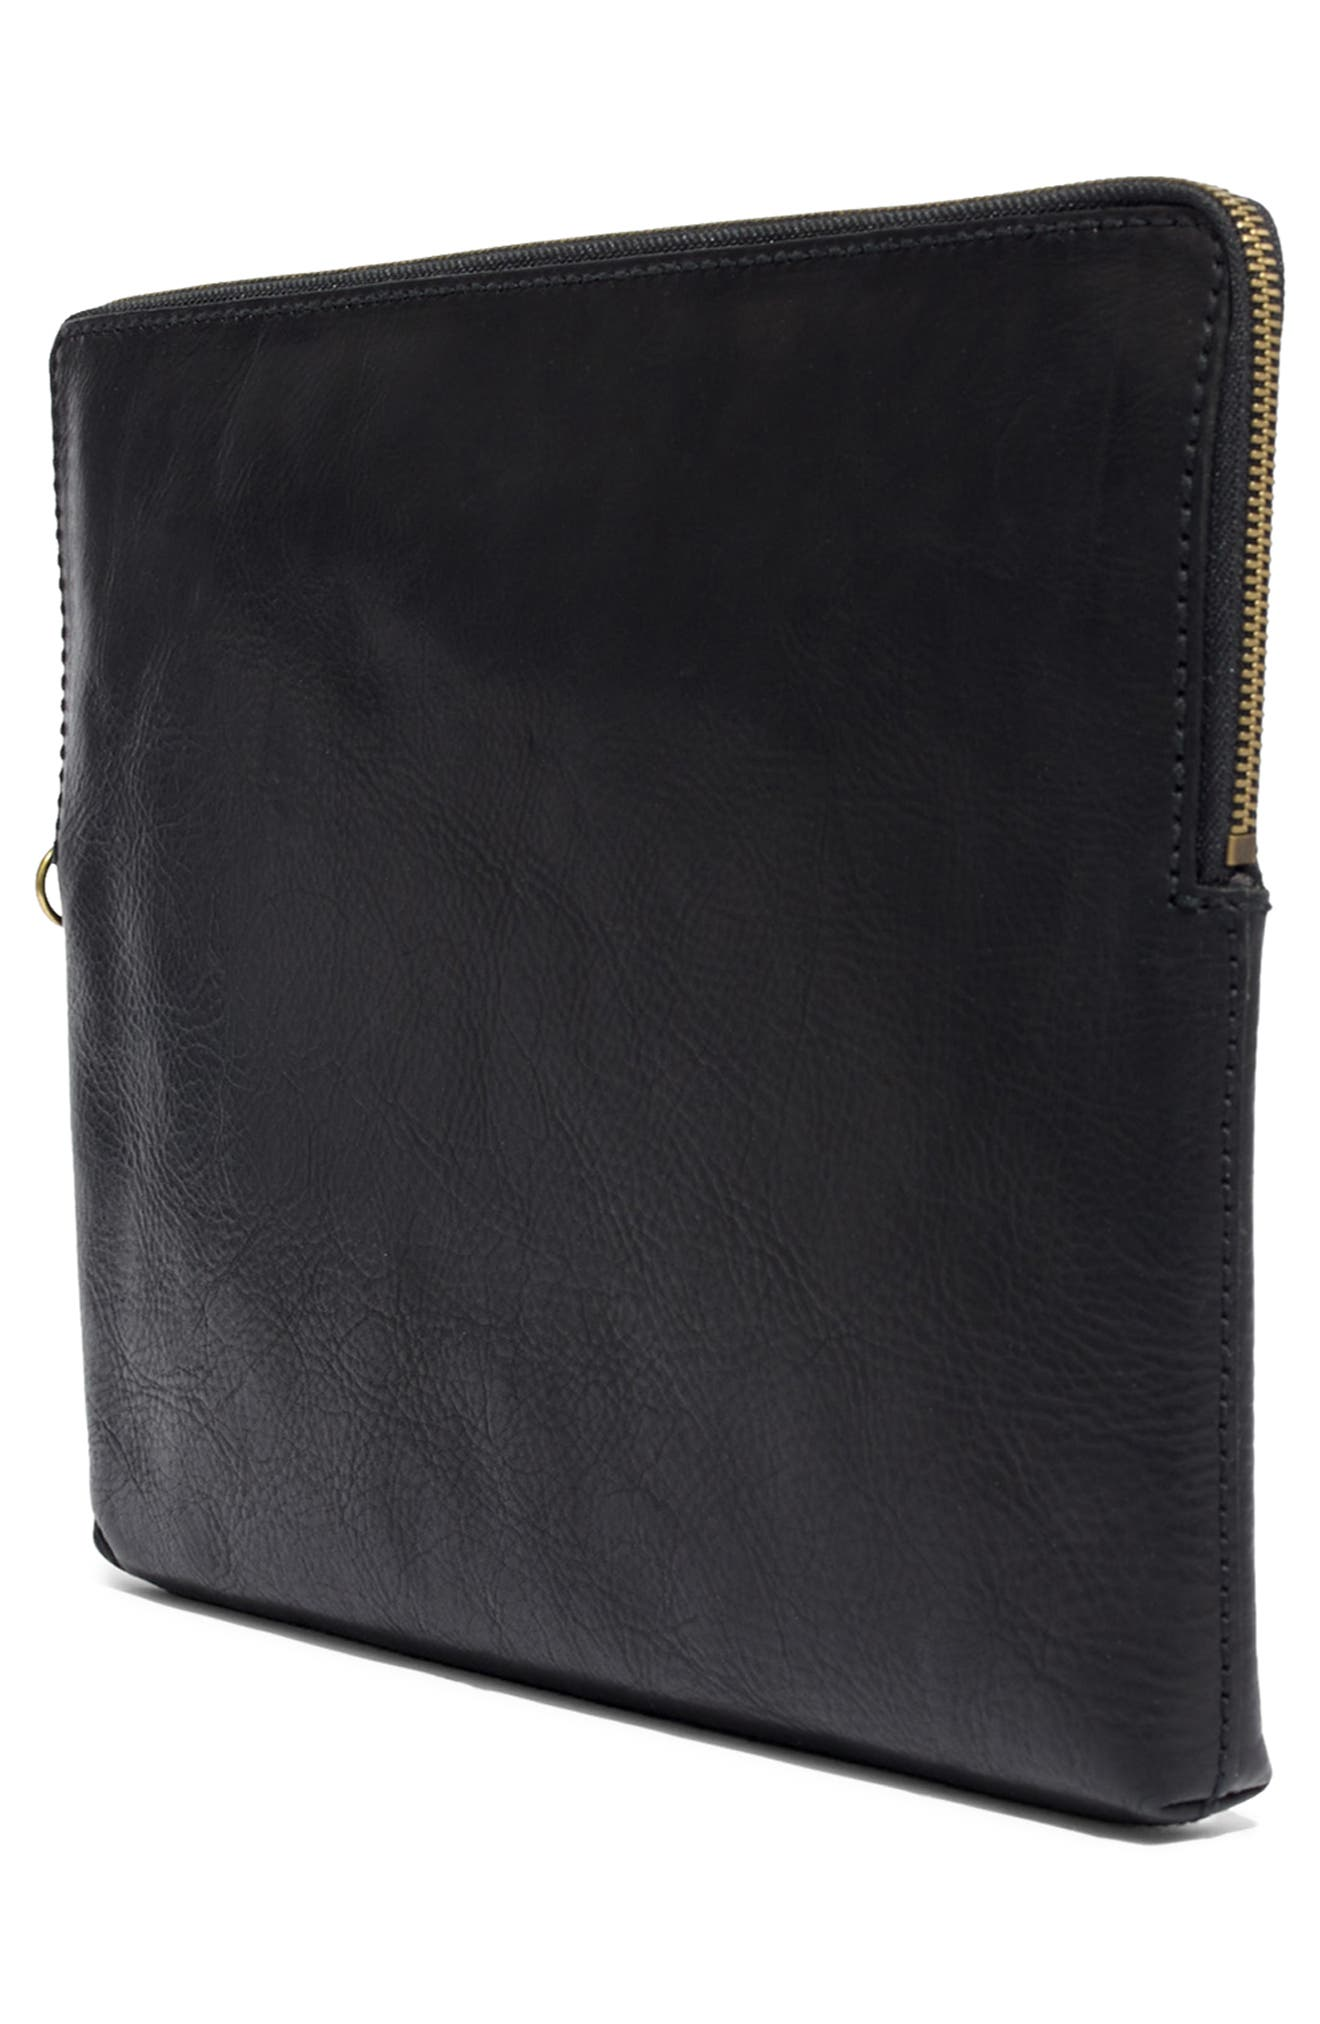 MADEWELL, Small Transport Leather Crossbody, Alternate thumbnail 9, color, 001